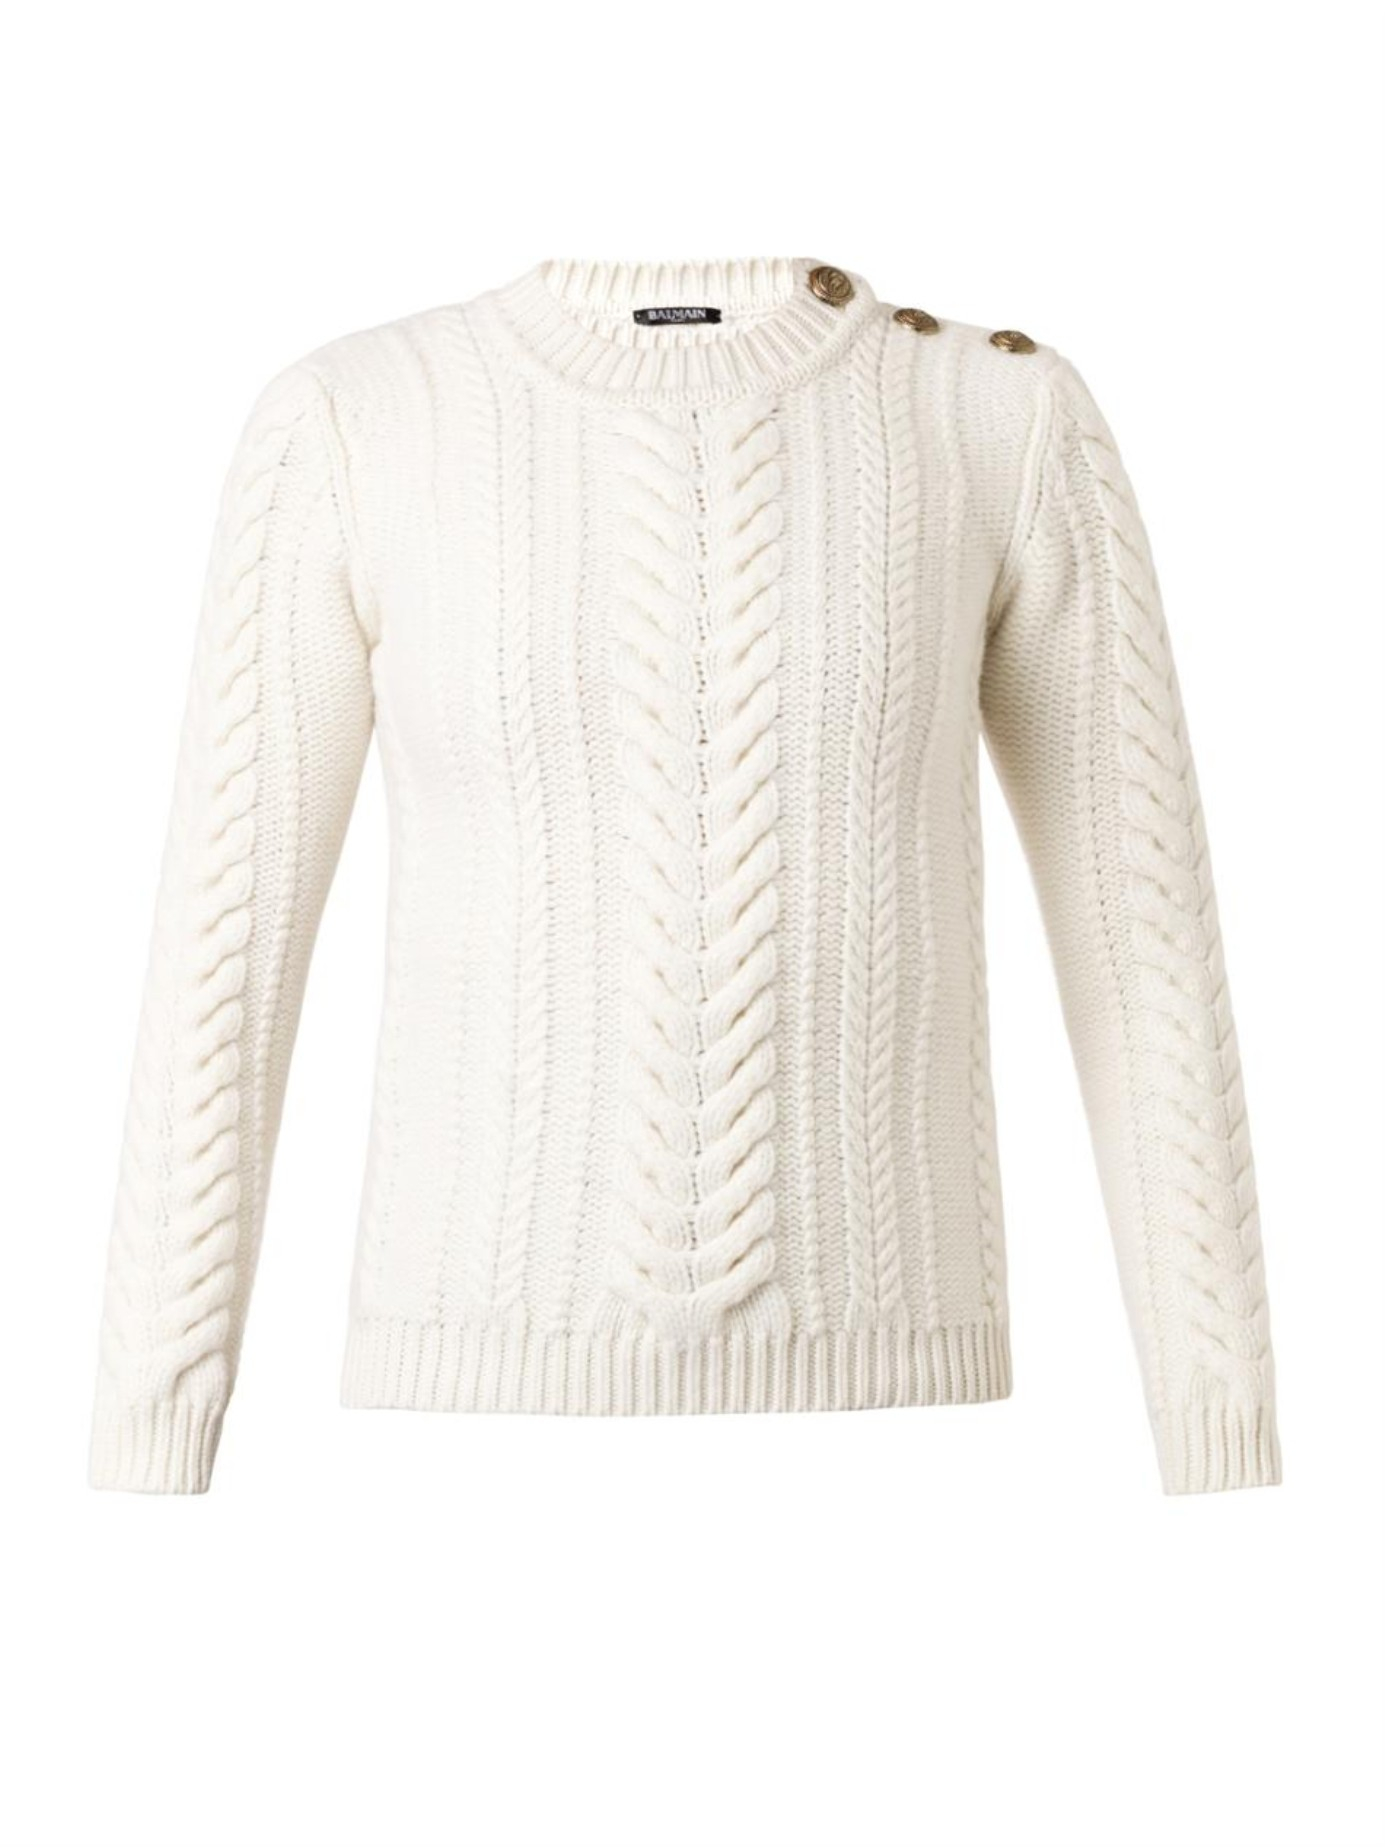 Lyst Balmain Cable Knit Wool Sweater In Natural